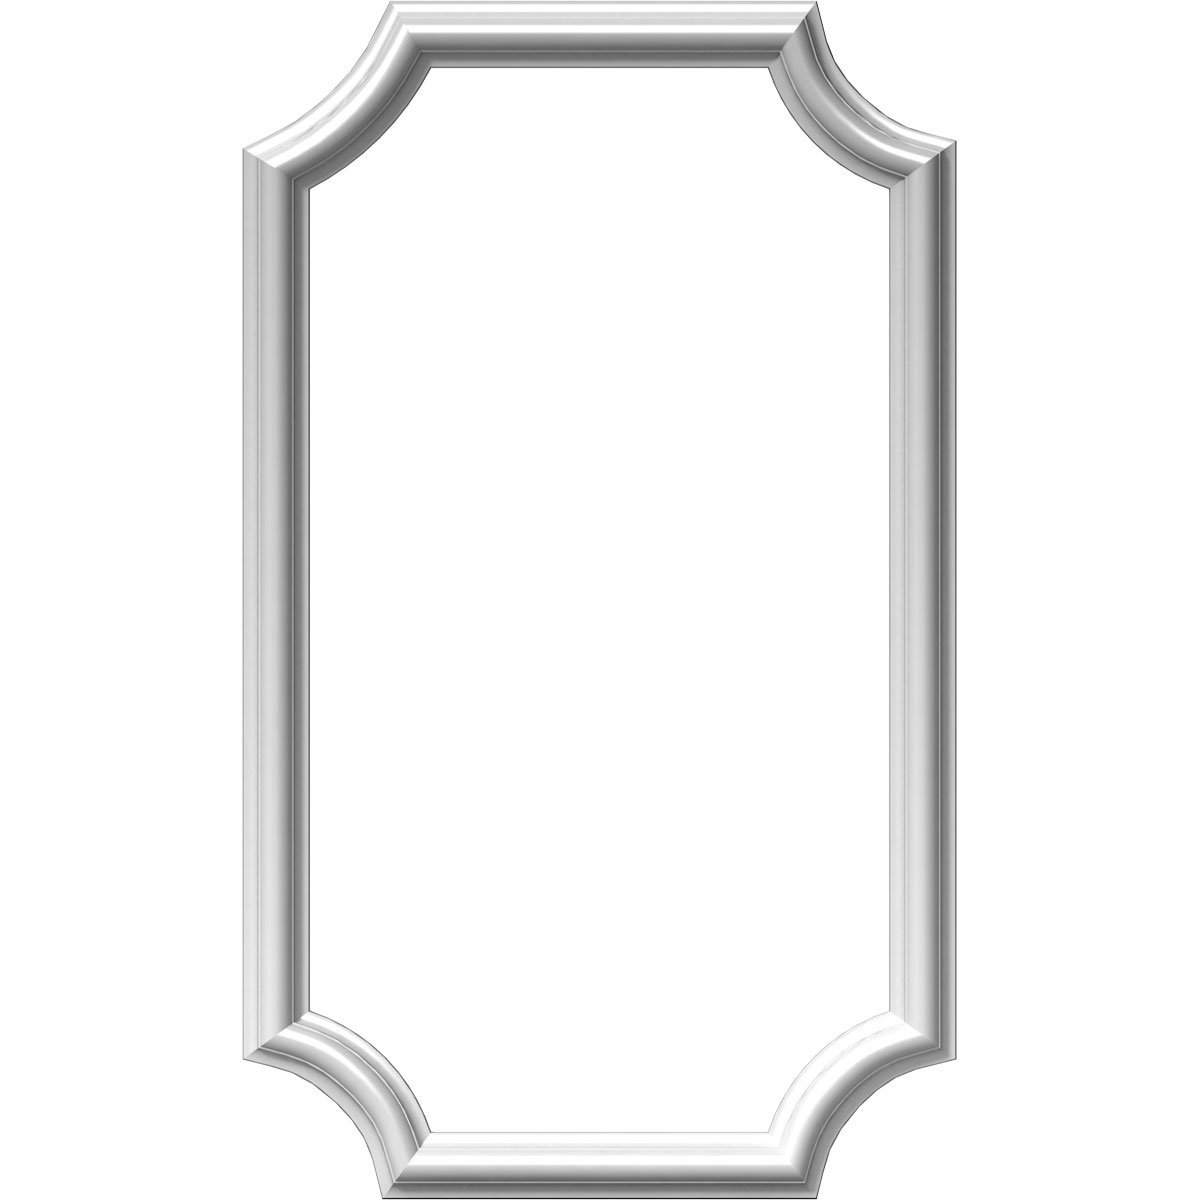 """Ekena Millwork PNL16X28AS-02-CASE-2 16""""W x 28""""H x 1/2""""P Ashford Molded Scalloped Wainscot Wall Panel (2-Pack), x x, Factory Primed White, 2 Piece"""